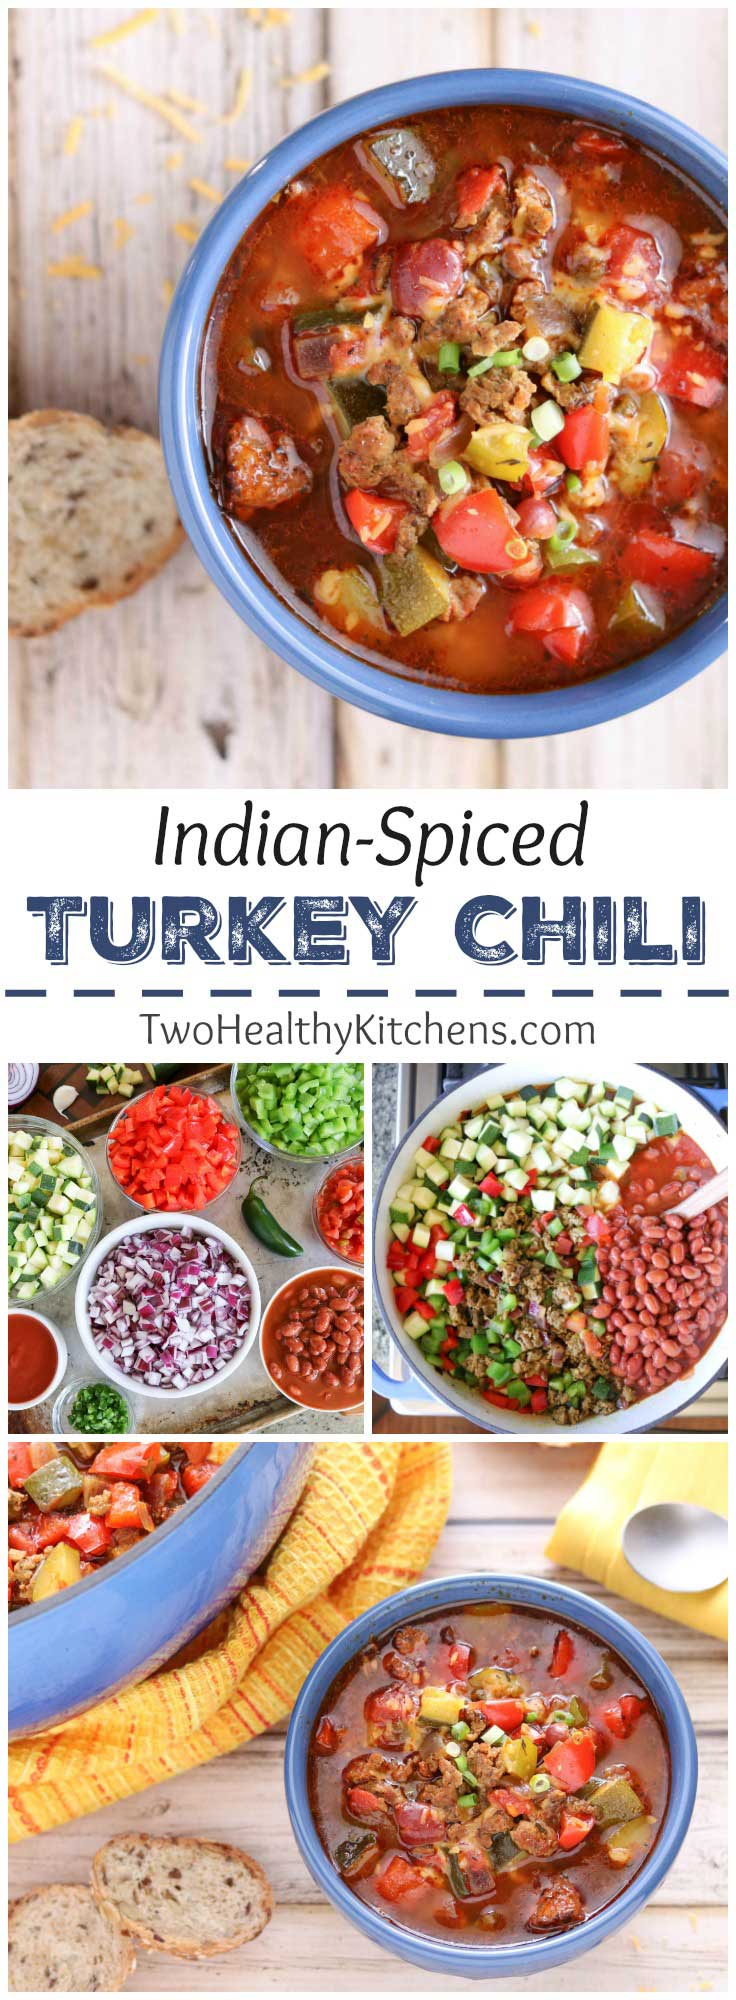 Traditional chili flavors + a unique twist from aromatic Indian spices! Our delicious Indian-Spiced Turkey Chili recipe has all the traditional, savory chili flavors of onions and garlic, simmered with meat and peppers in a rich, tomato-based sauce. But then we layer on the Indian-inspired flavors of curry powder, garam masala, turmeric and cinnamon - for an amazing, easy turkey chili recipe that wins raves … and also chili cook-offs! | www.TwoHealthyKitchens.com